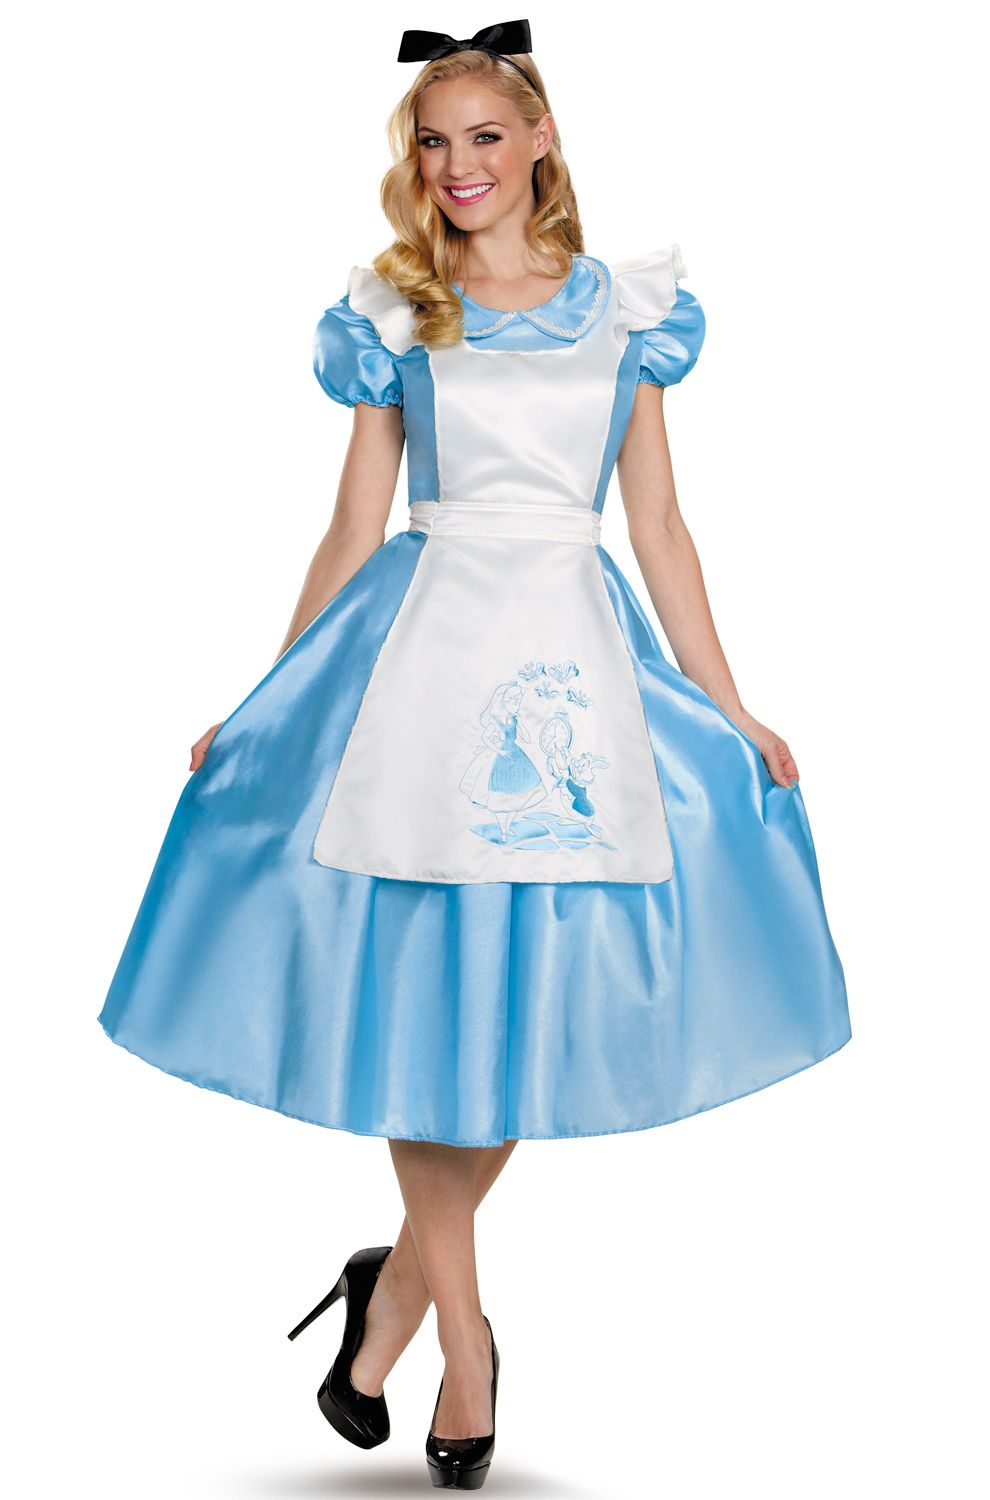 Take A Trip Down The Rabbit Hole With This Lovely Alice In Wonderland  Costume. Modeled After The Original Movie Version, This Costume Is A Must  For Any ...